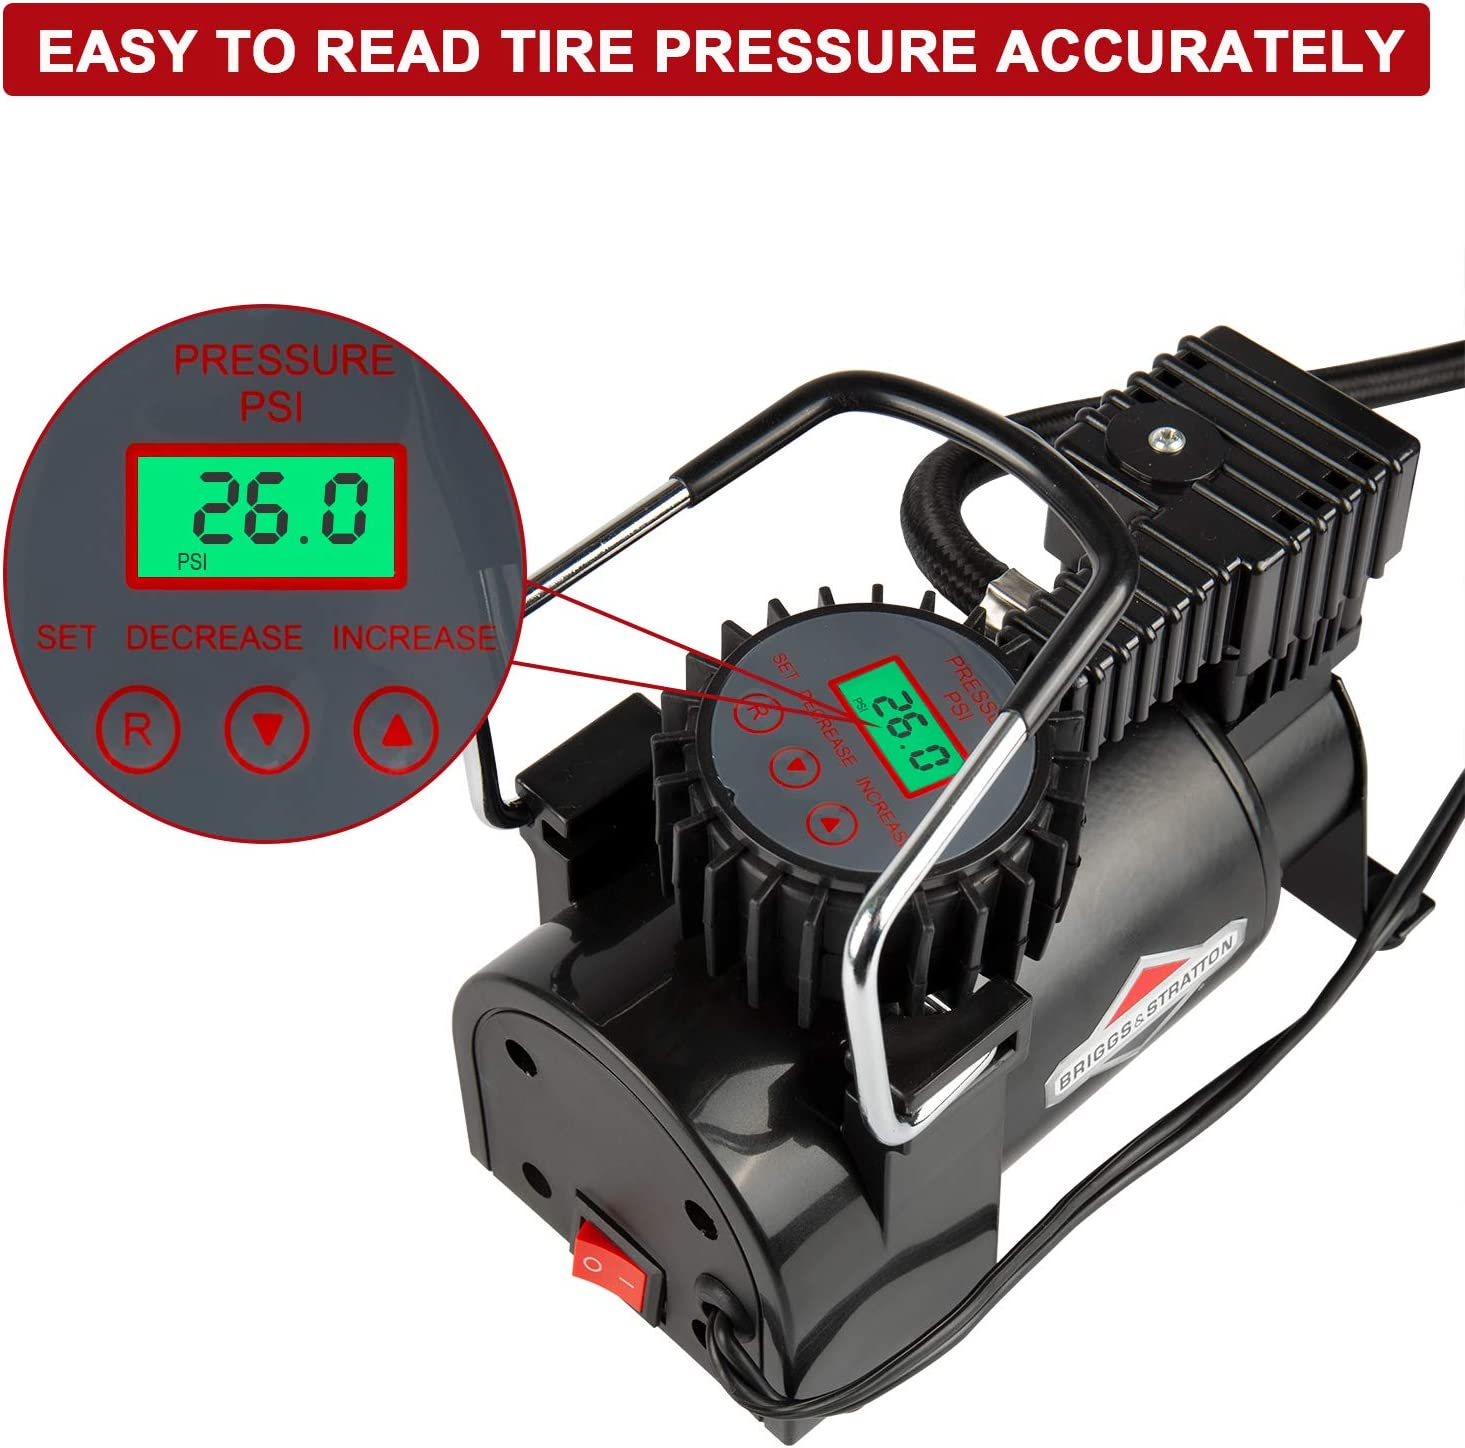 BriggsStratton Tire Inflator BS-IN210DC 12V DC Car Tire Pump with Digital LCD Display,Portable Air Compressor Pump Built-In Tire Pressure Gauge,35L//M 120 PSI Air Pump w//Extra Nozzle Adaptor for Ball